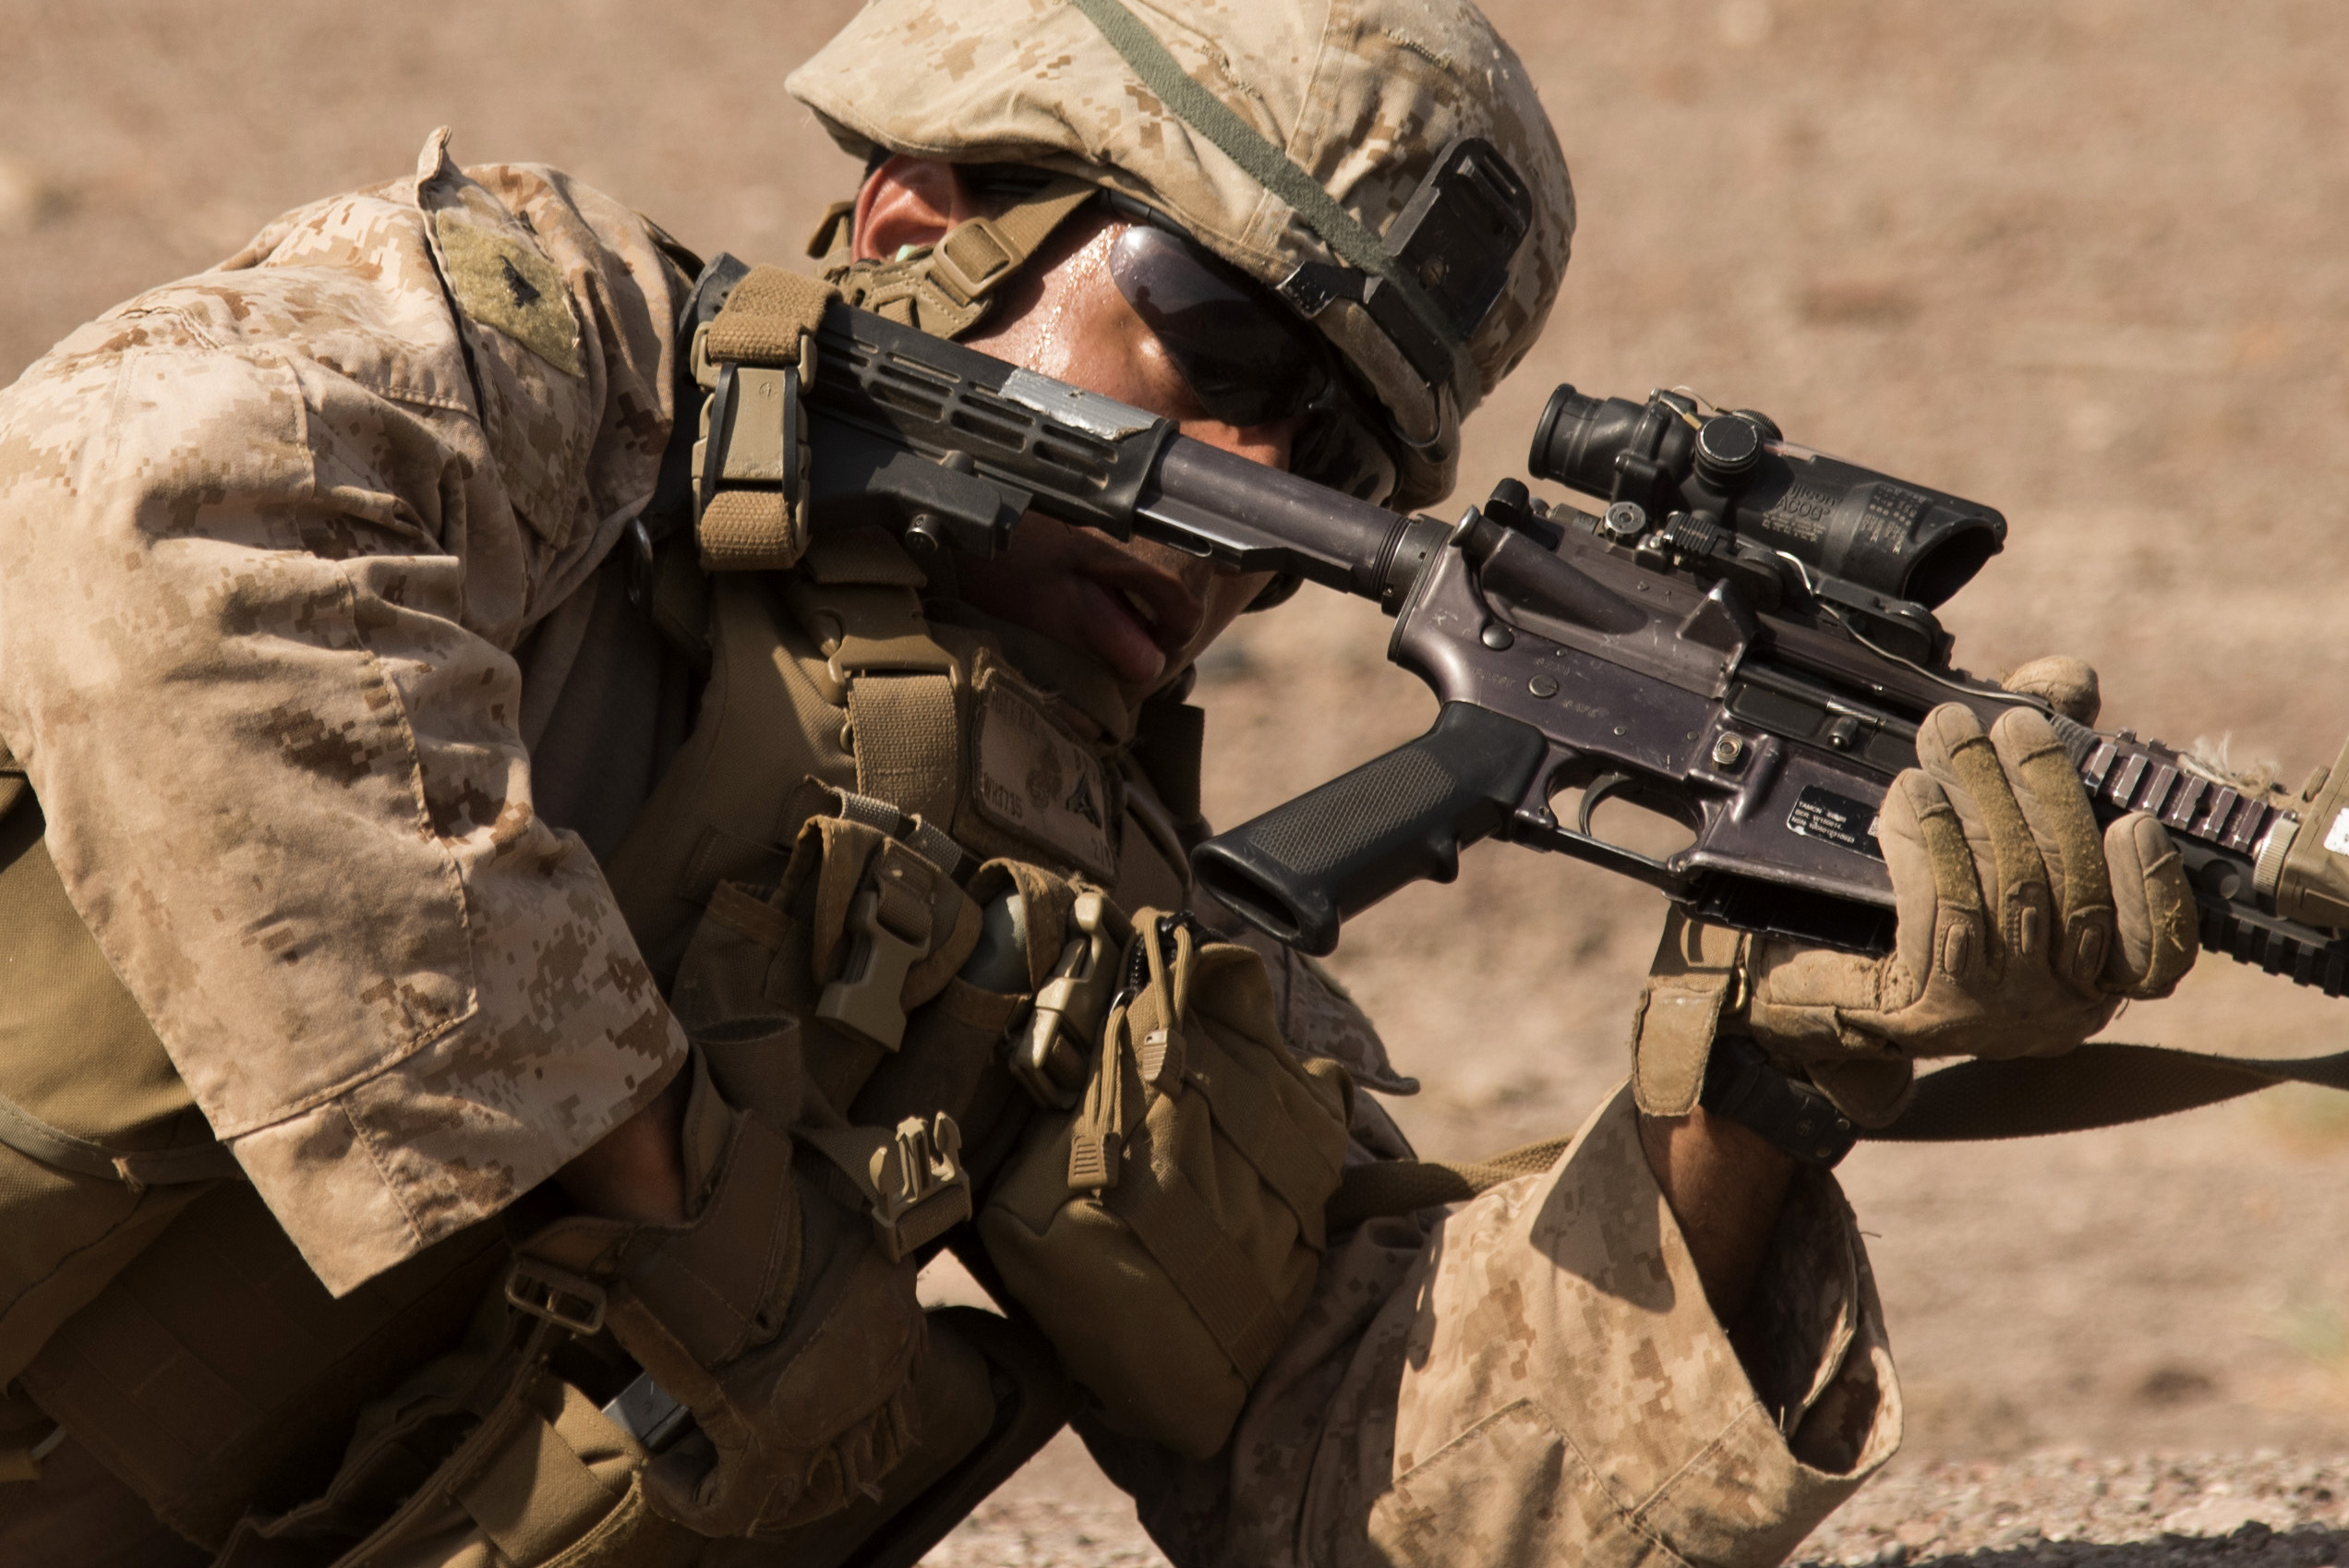 ARTA, Djibouti – U.S. Marine Corps Lance Cpl. Khalil Hitt, Special-Purpose Marine Air-Ground Task Force Crisis Response-Africa (SPMAGTF-CR-AF) machine gunner, reloads his M4 carbine during live fire range drills for small arms fire team training, Oct. 5, 2016, at Arta, Djibouti. Assigned to Combined Joint Task Force-Horn of Africa, SPMAGTF-CR-AF completed team level range drills to continue sustainment of core skills and build from individual skill levels. The next level of training will consist of squad training. (U.S. Air Force photo by Staff Sgt. Tiffany DeNault)